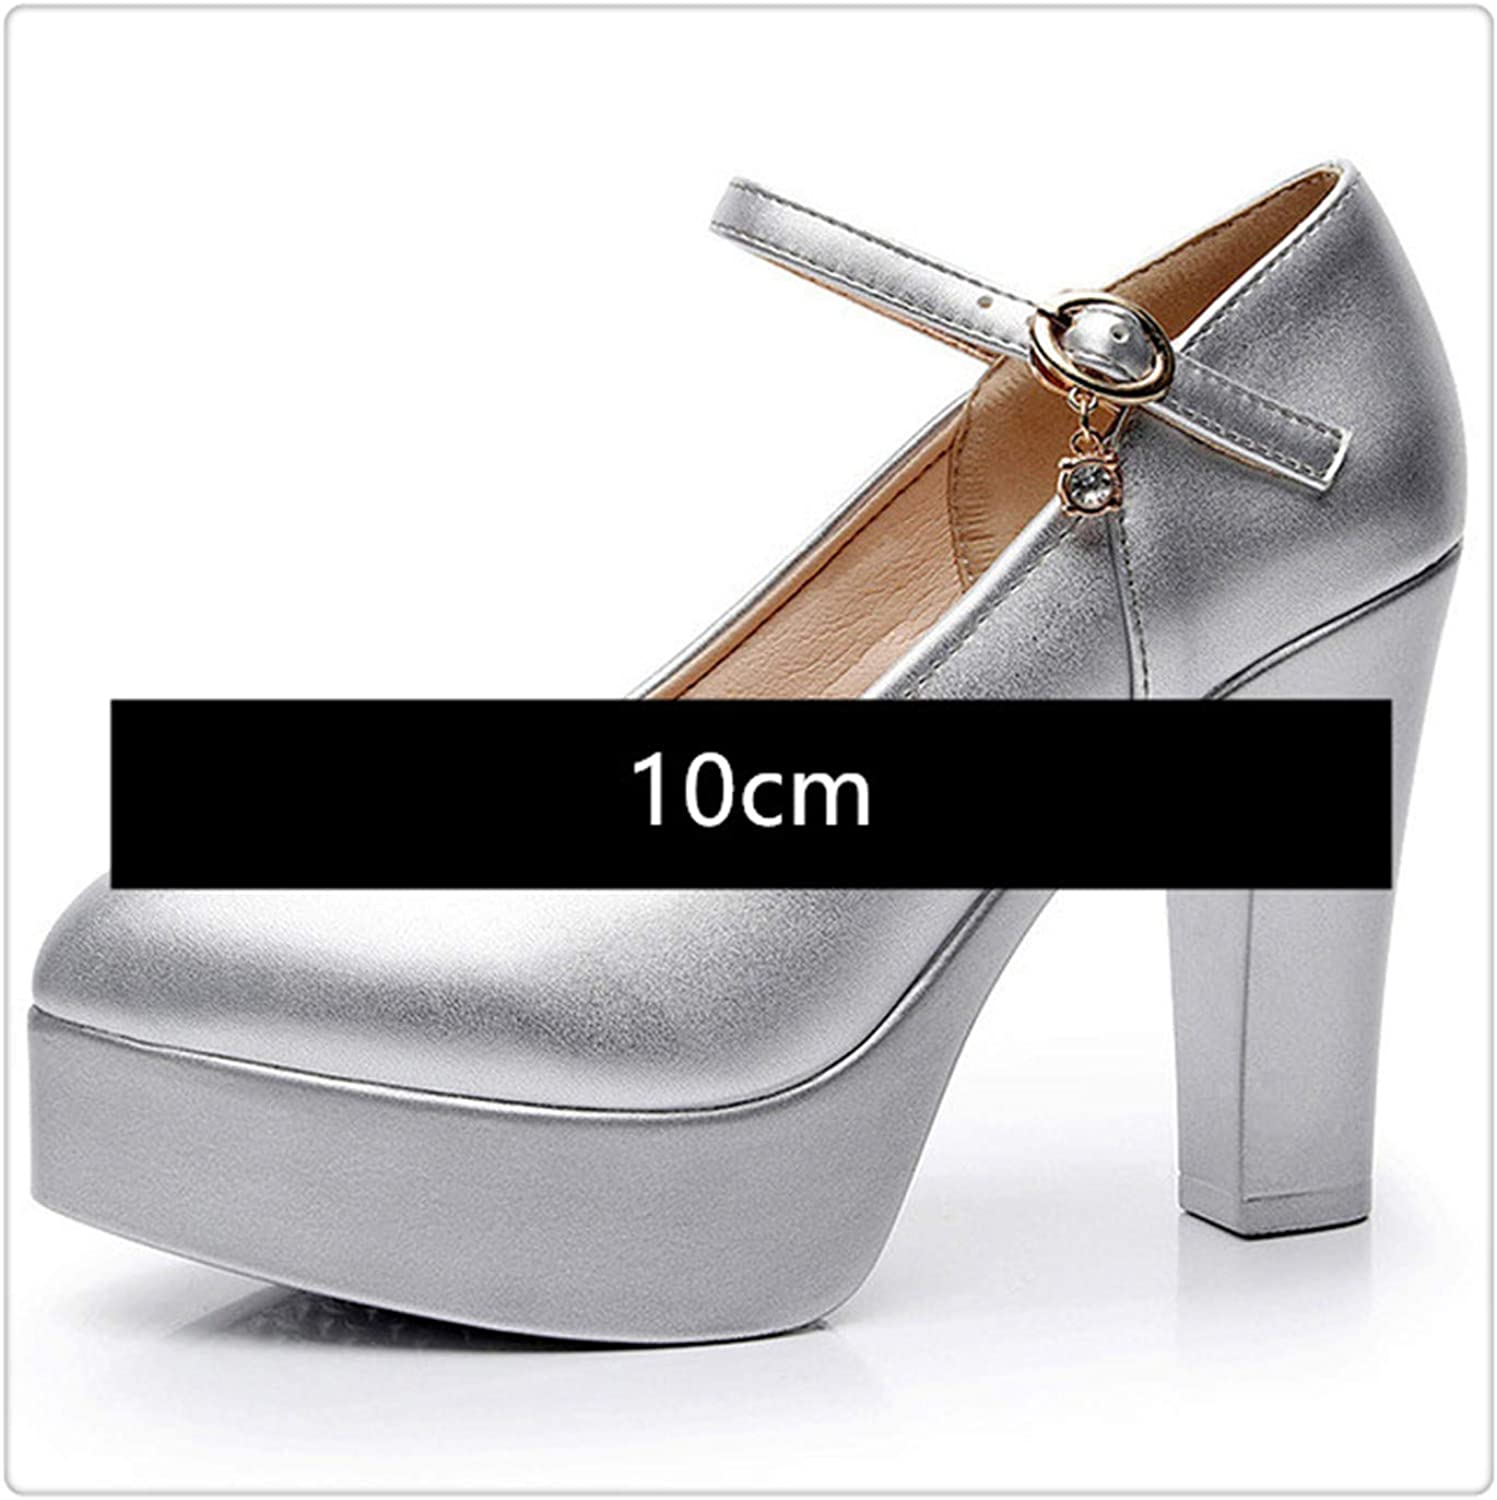 KKEPO& Women's Sandals 2019 Summer Leather High Heels Office shoes for Woman Fashion Square Heel Ladies Sandals Woman Platform shoes Silvery 10cm 38